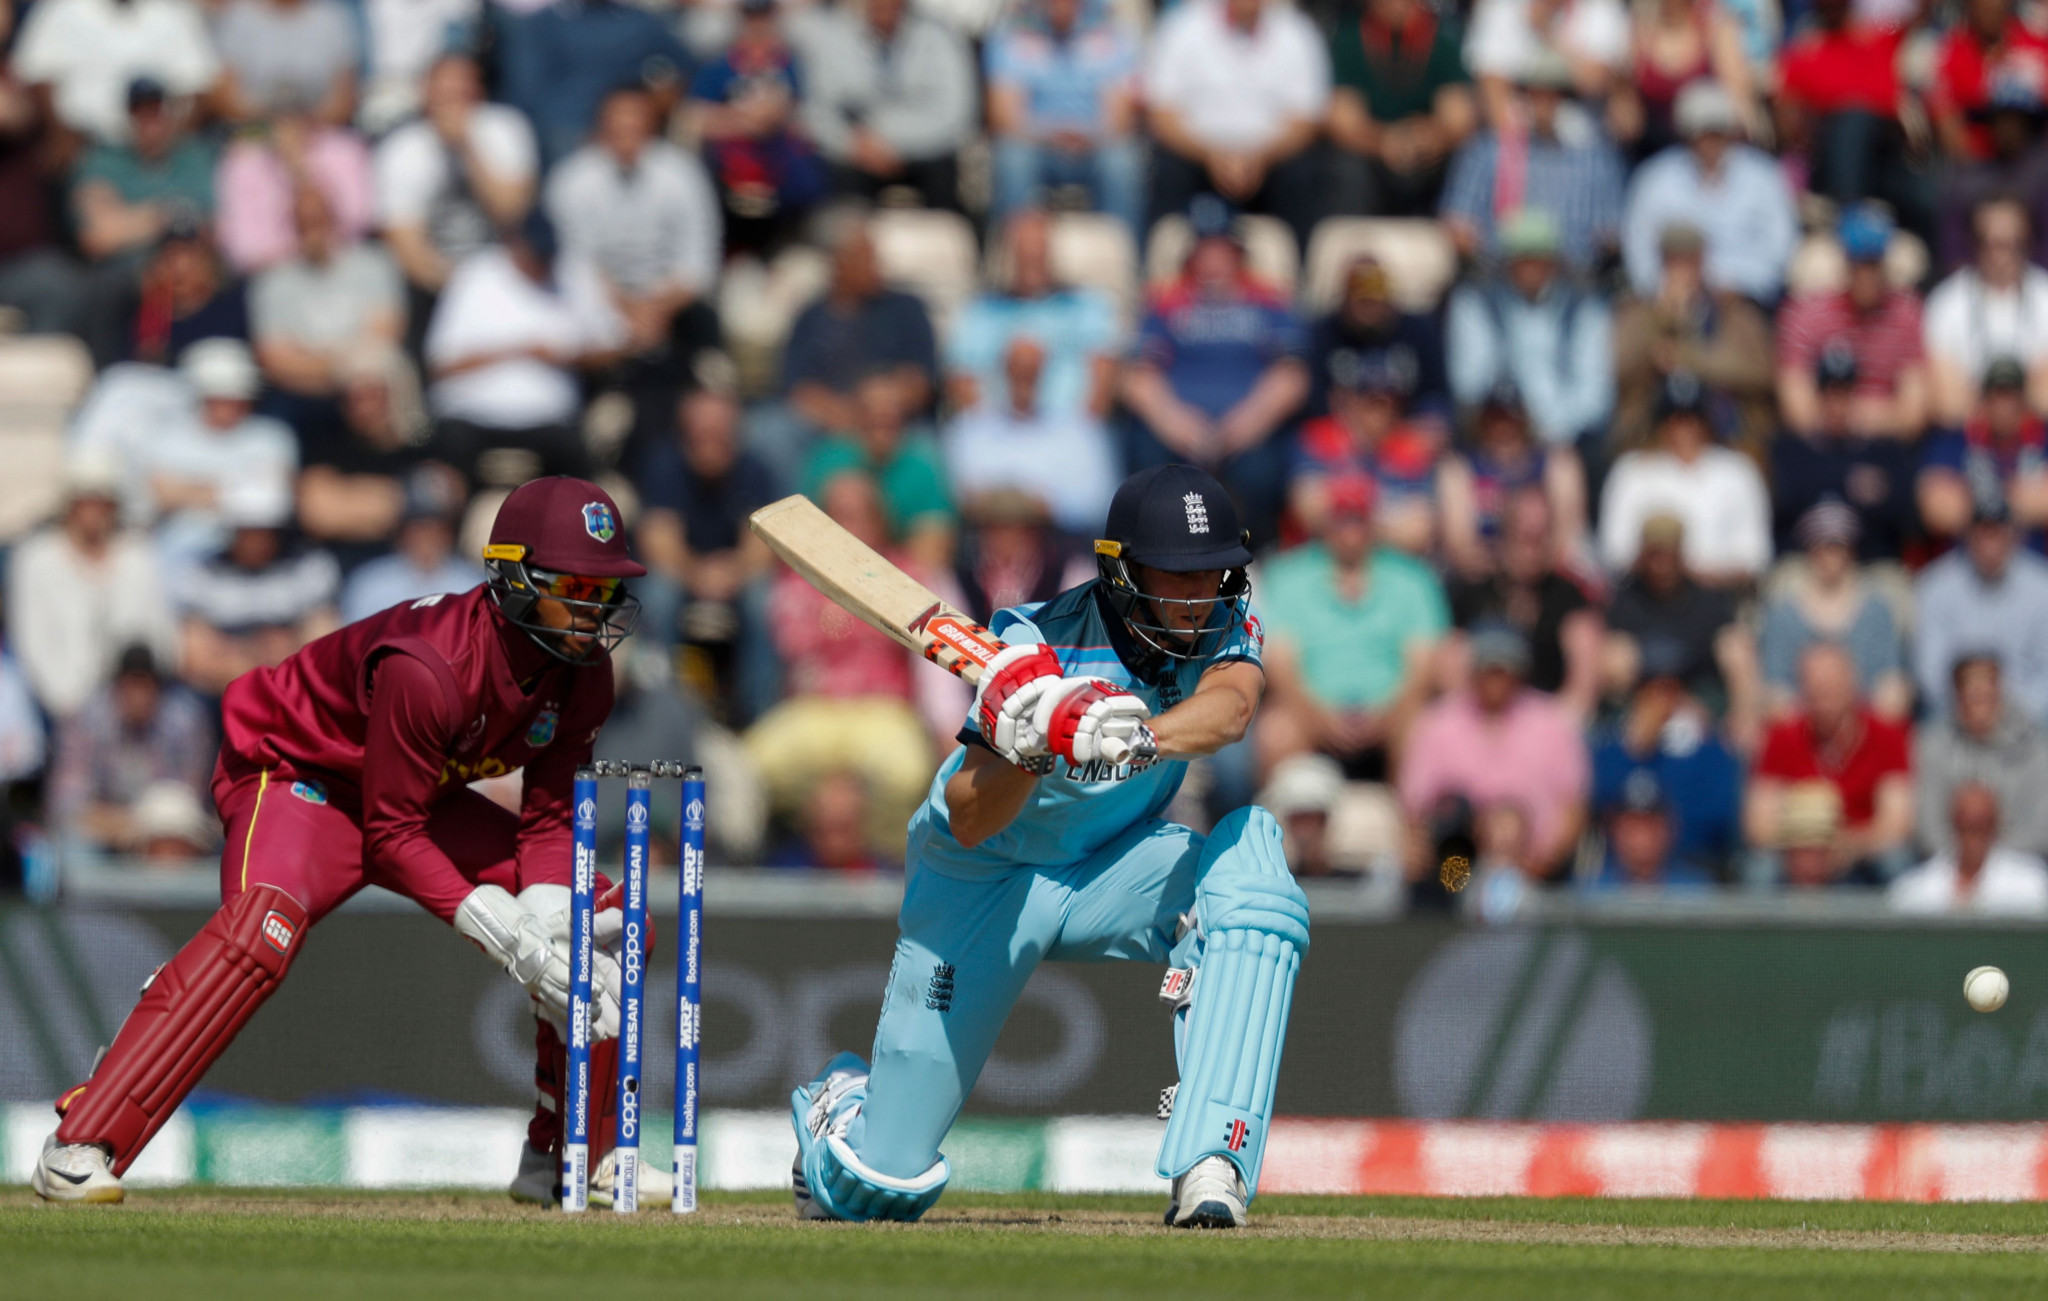 England easily chased down their target as they won with 16.5 overs to spare ©Getty Images